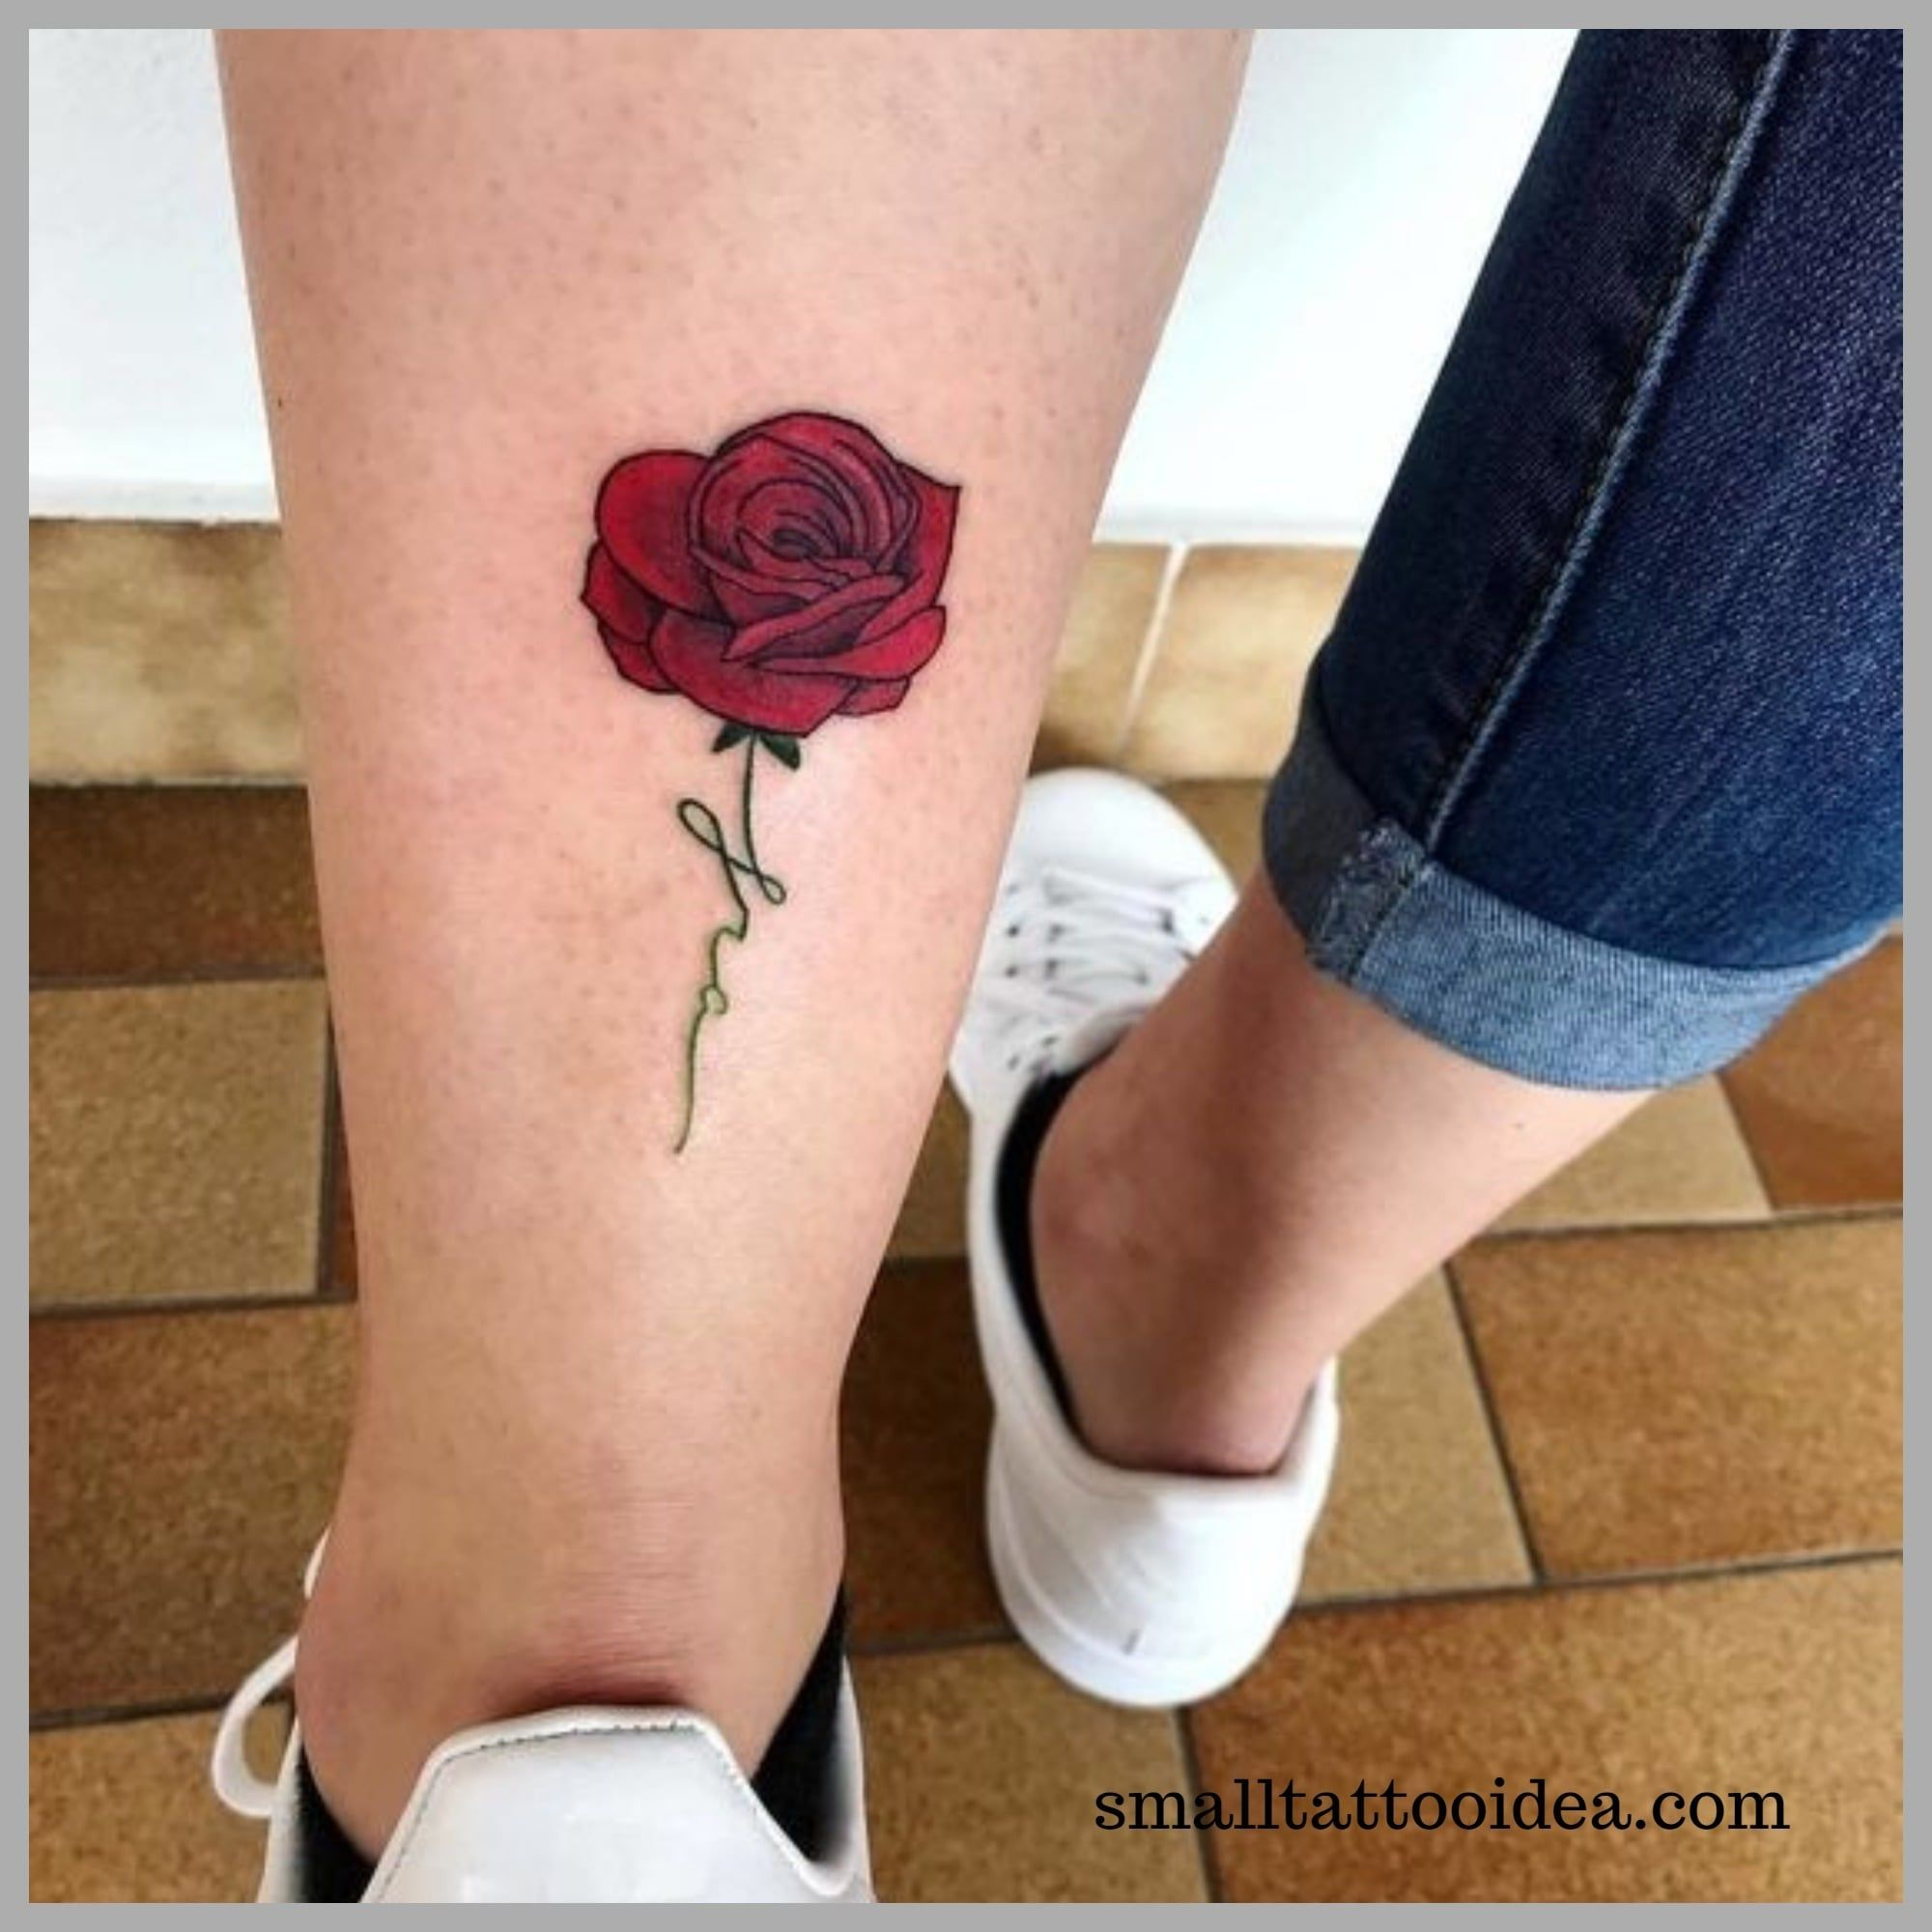 35 Small Red Rose Tattoo Ideas For Girls Tattoo Small Rose Tattoo Tattoos Rose Tattoos For Women